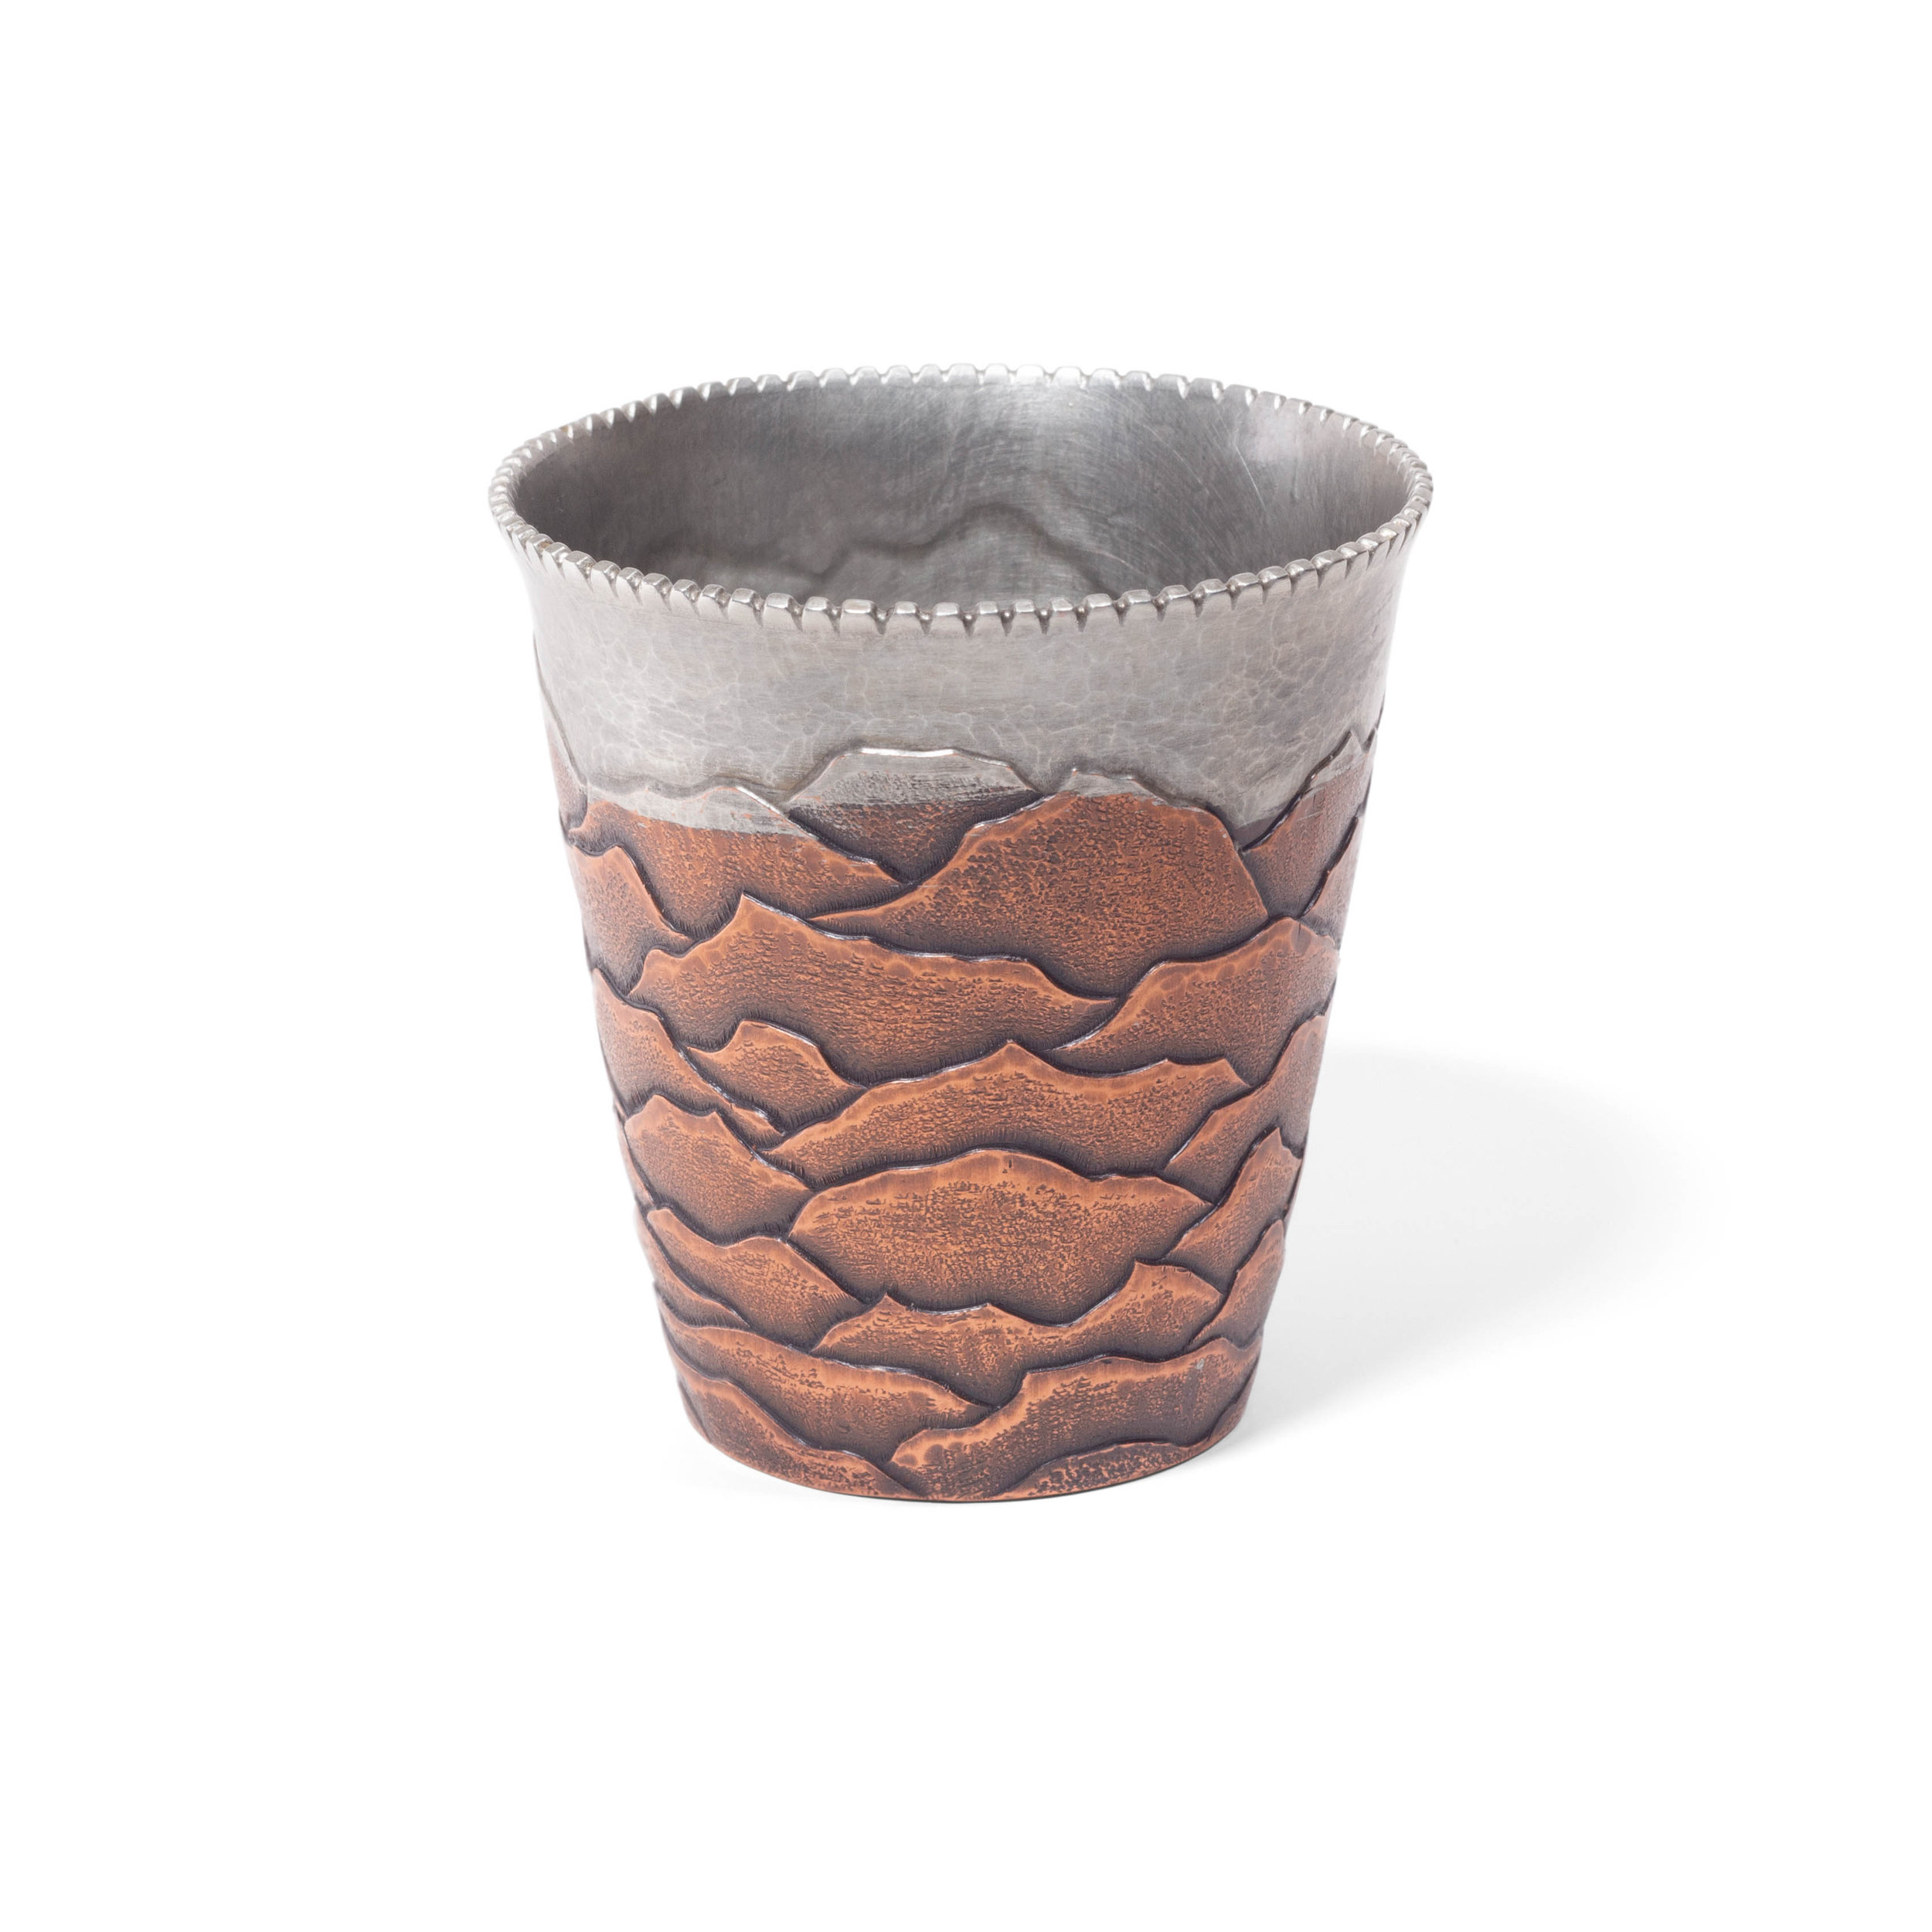 Scale Cup